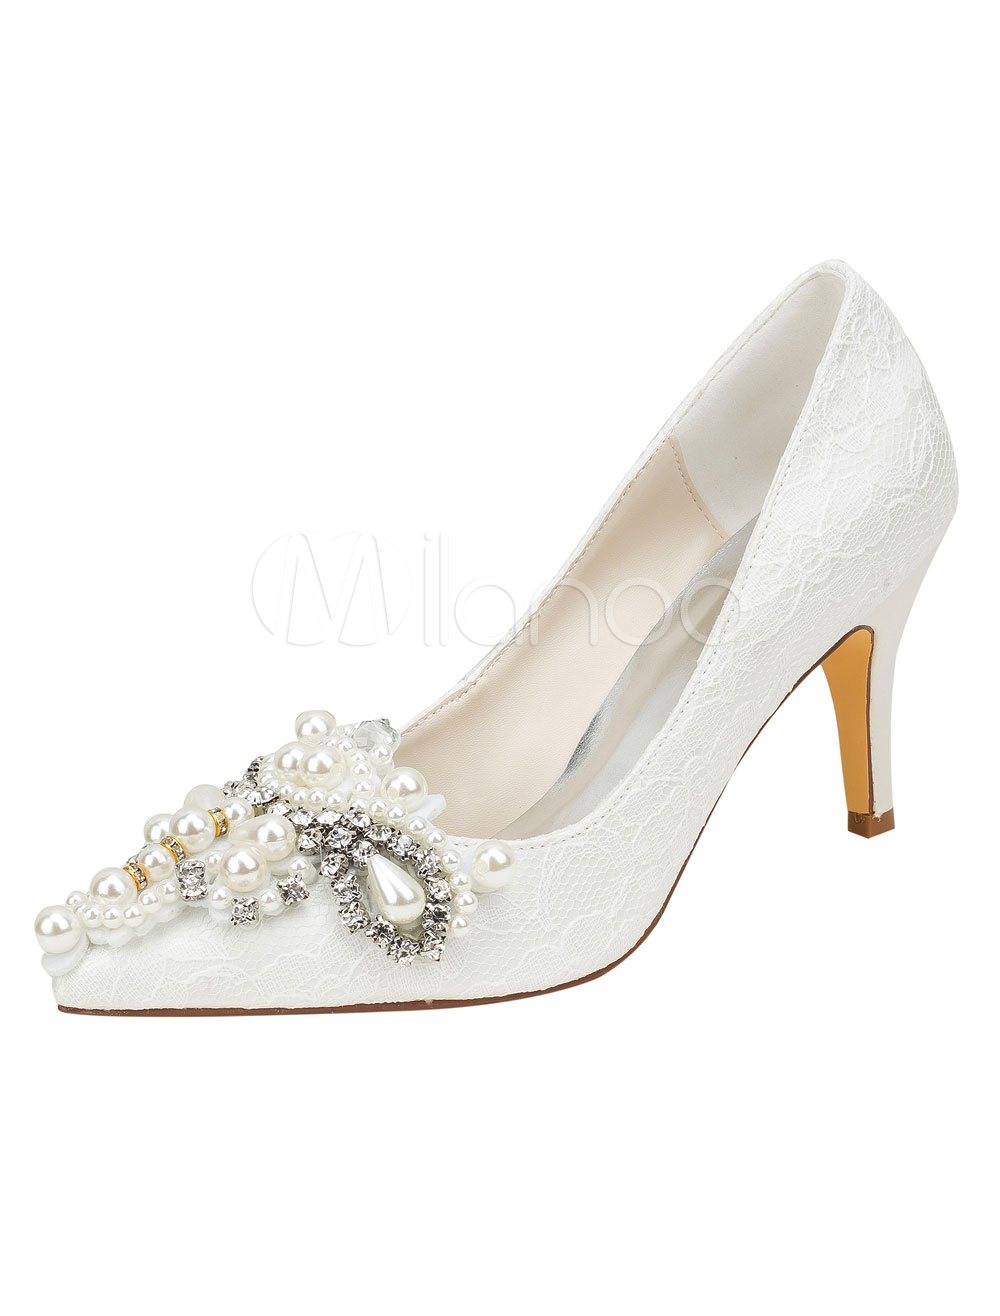 Lace Wedding Shoes Ivory Pointed Toe Rhinestones Beaded High Heel Pumps